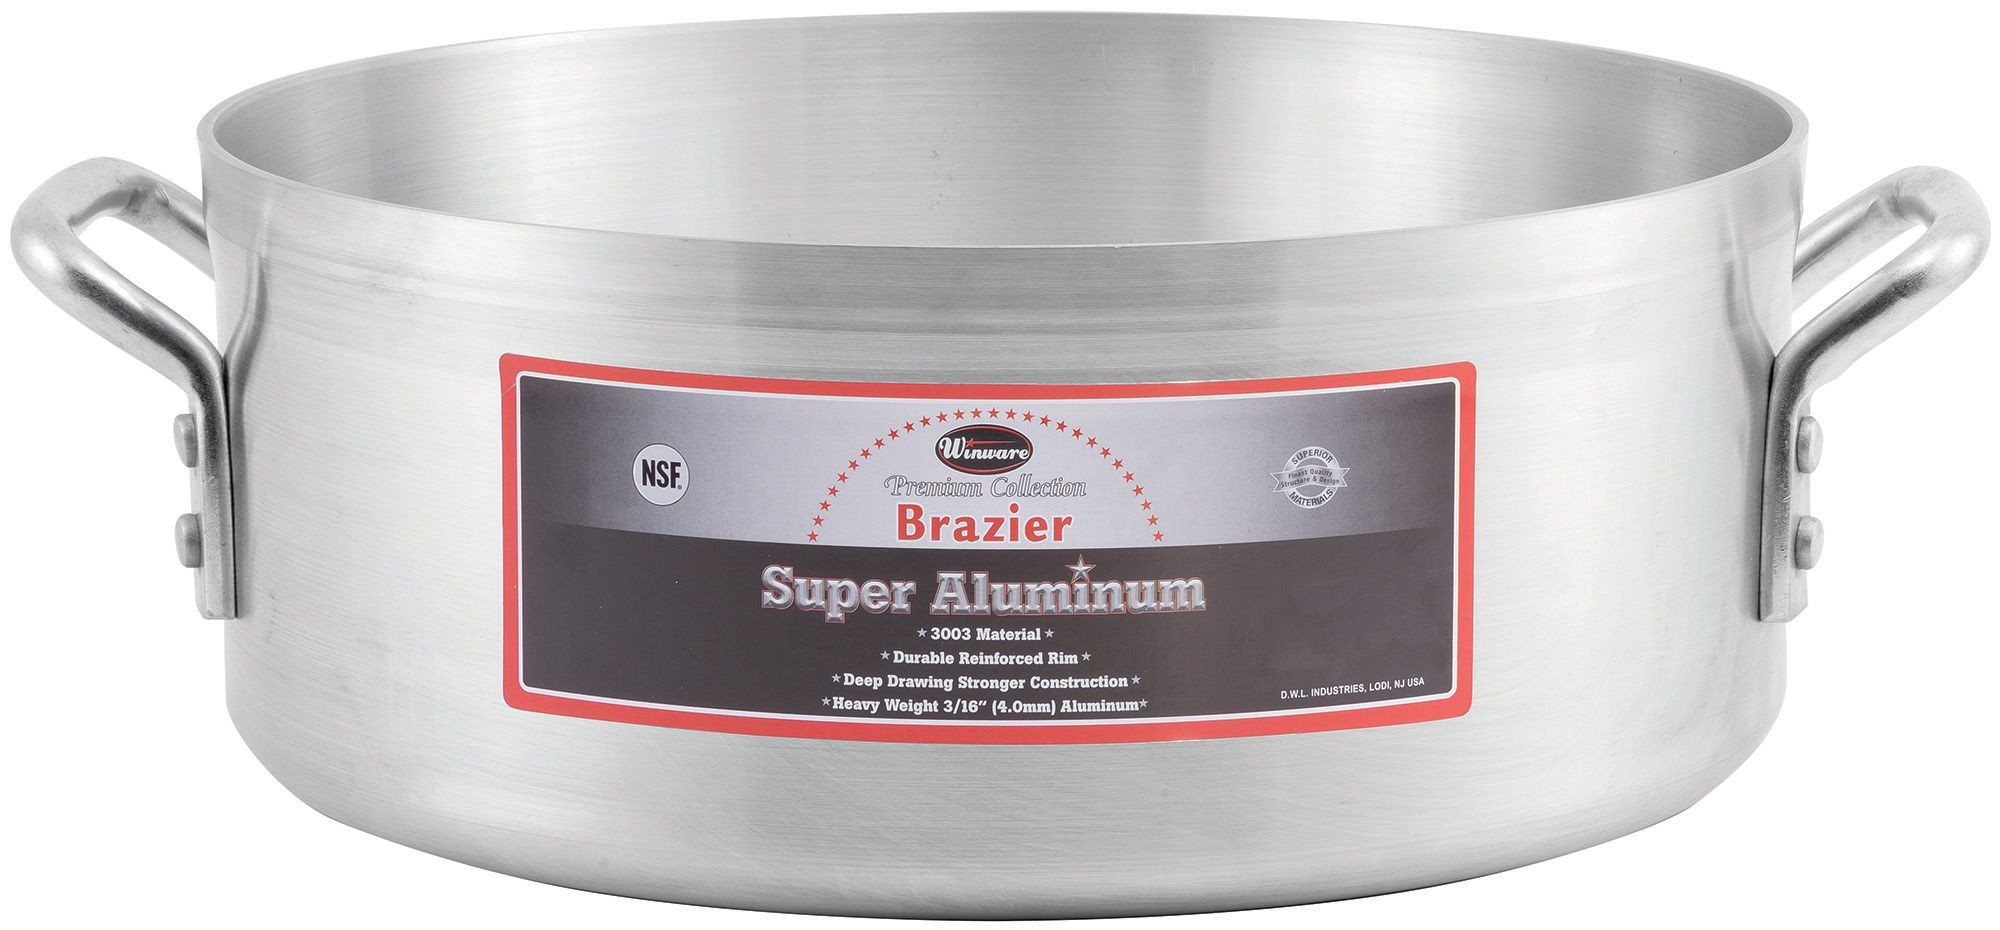 24 Qt Super Aluminum Brazier (4.0 mm)